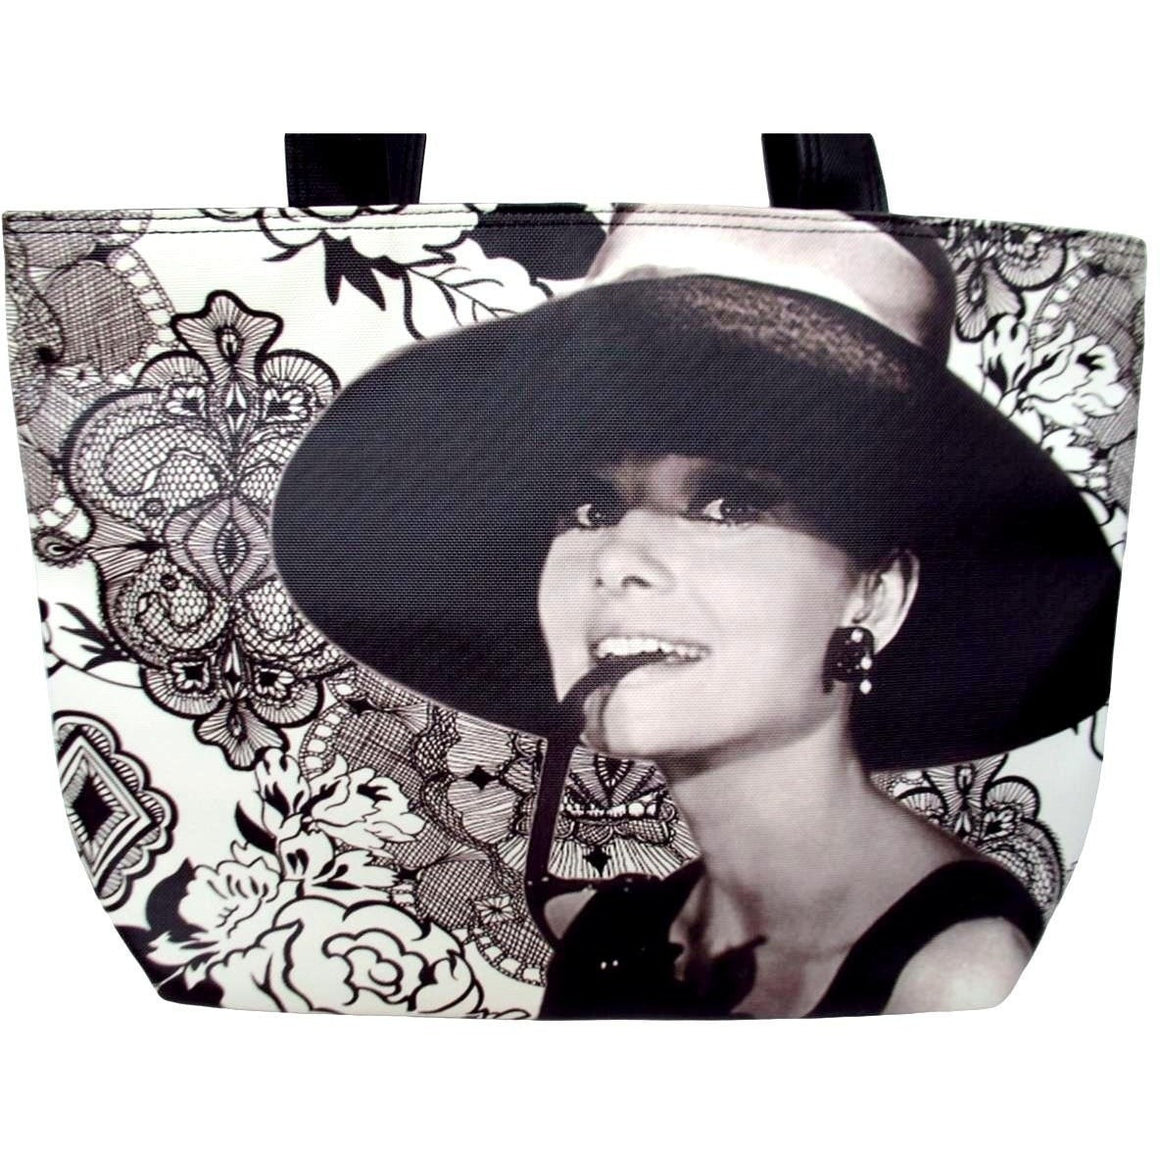 Audrey Hepburn Breakfast At Tiffany's Rare Shoulder Bag Purse - SilverMania925